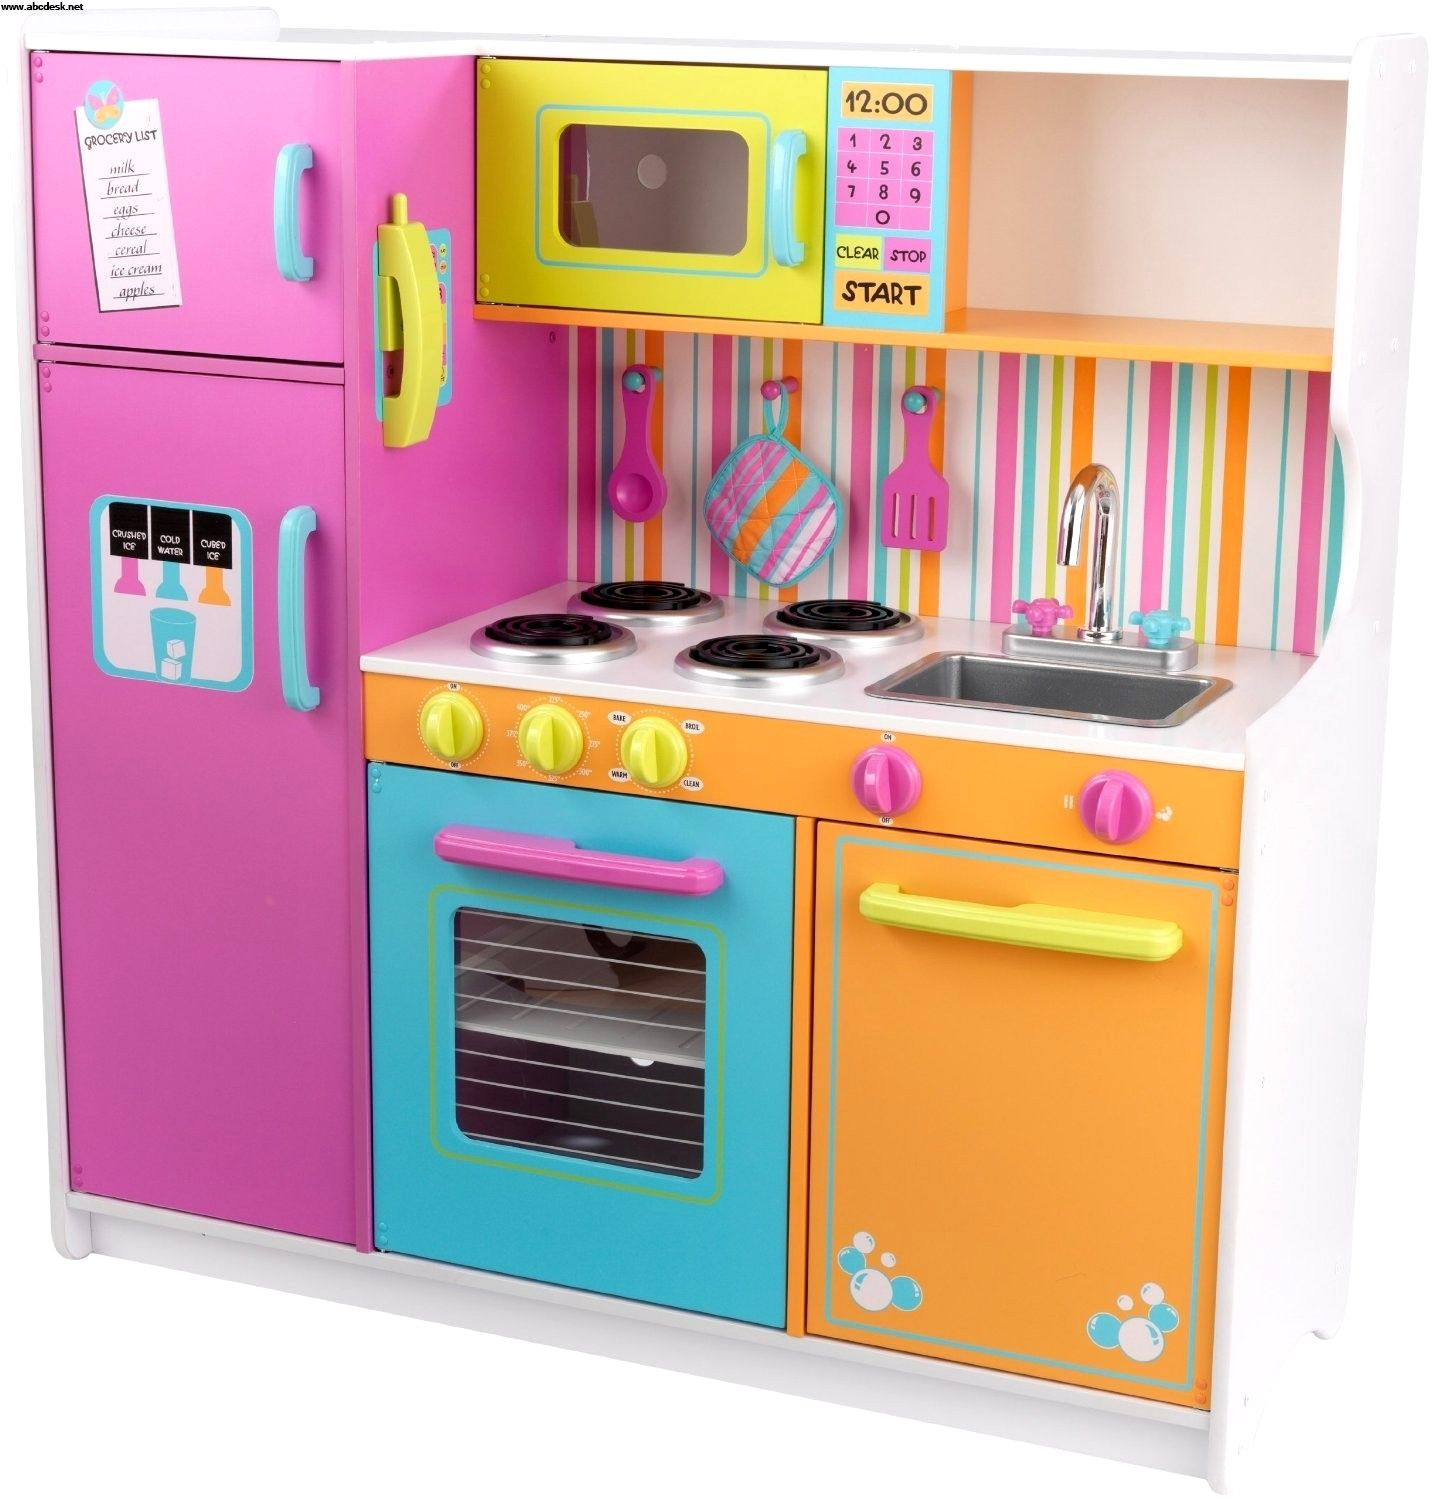 Wooden Kitchen Set For Toddlers With